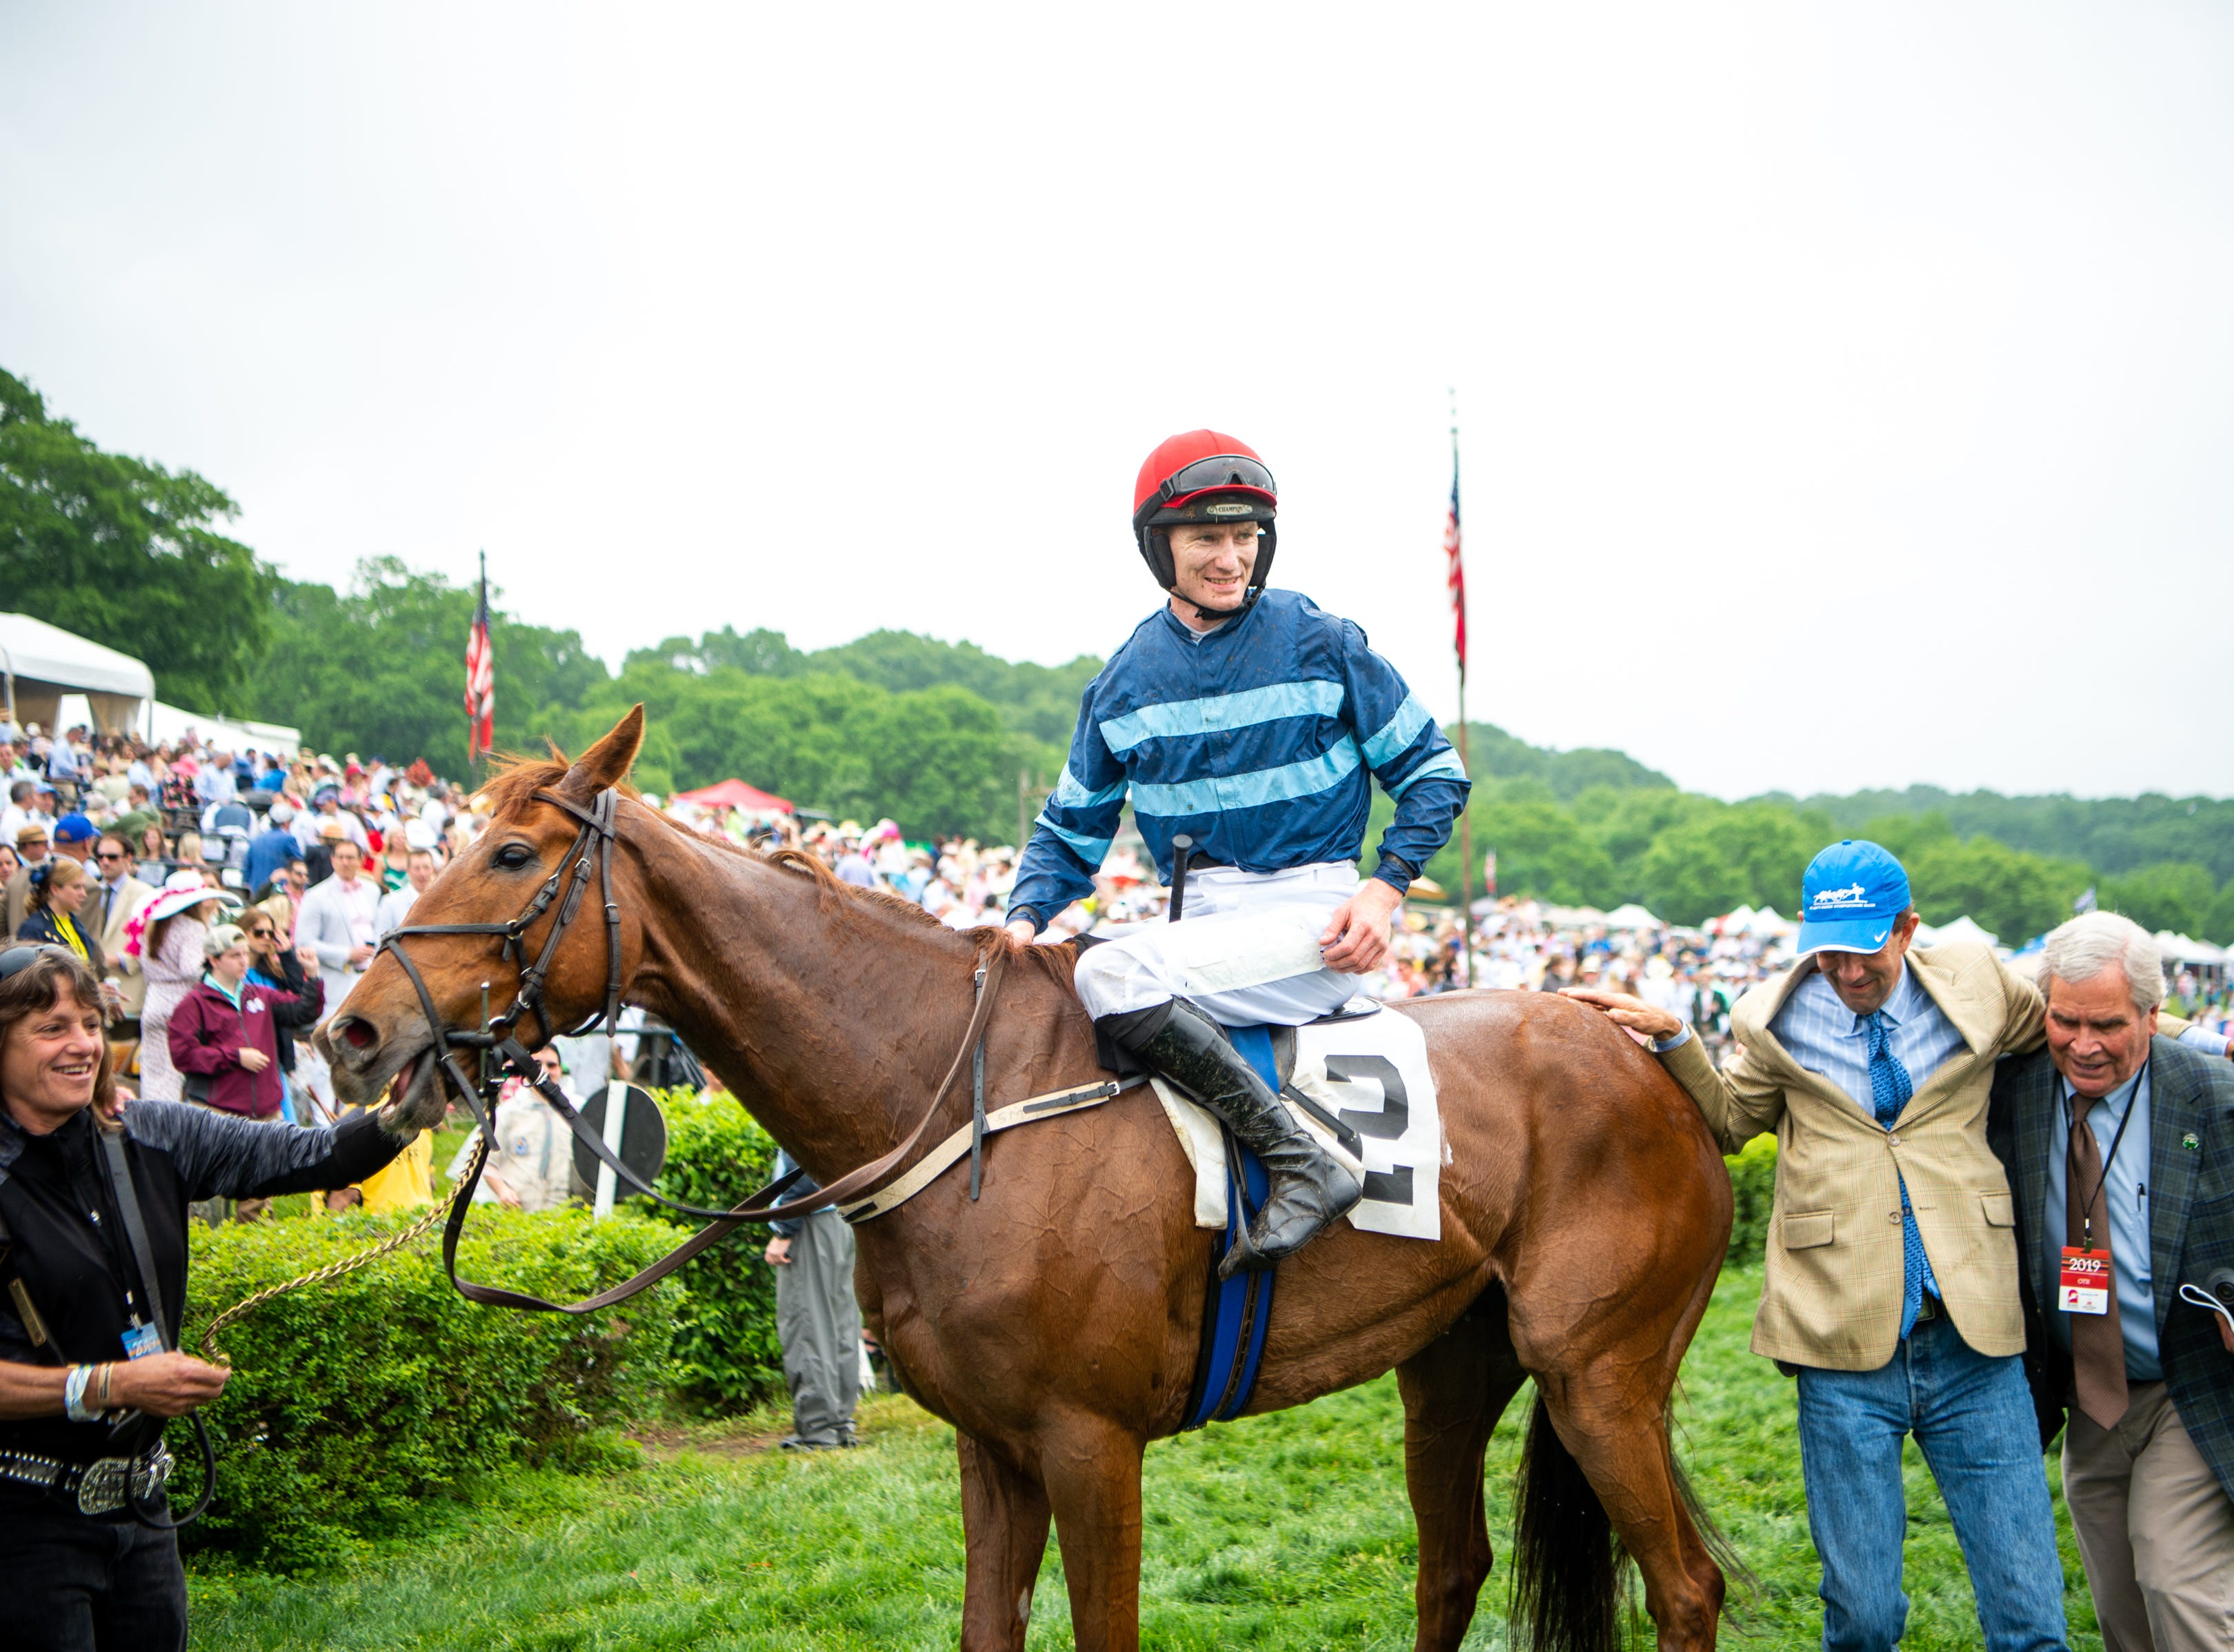 Sean McDermott celebrates with City Dreamer after winning the third race of the Iroquois Steeplechase at Percy Warner Park Saturday, May 11, 2019, in Nashville, Tenn.